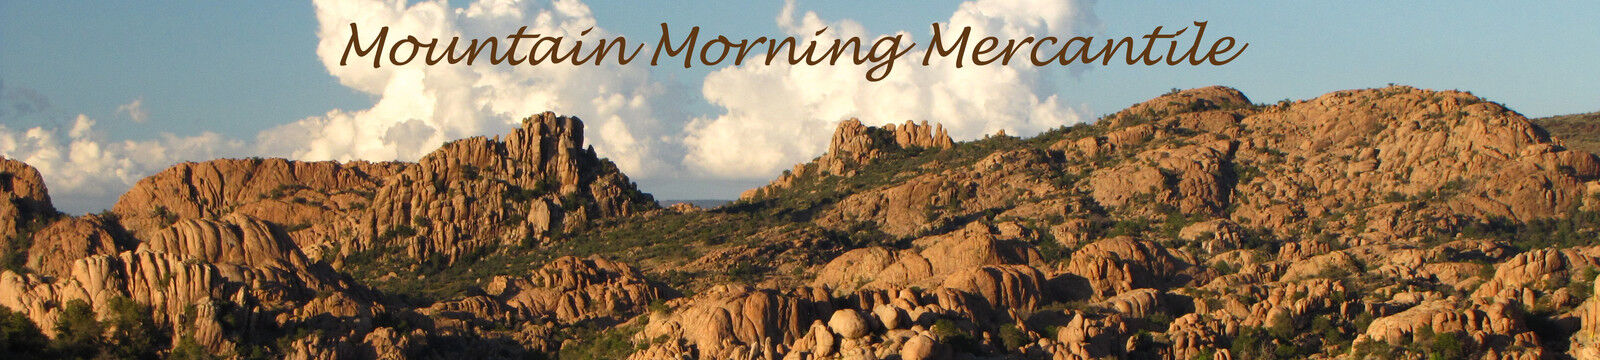 Mountain Morning Mercantile